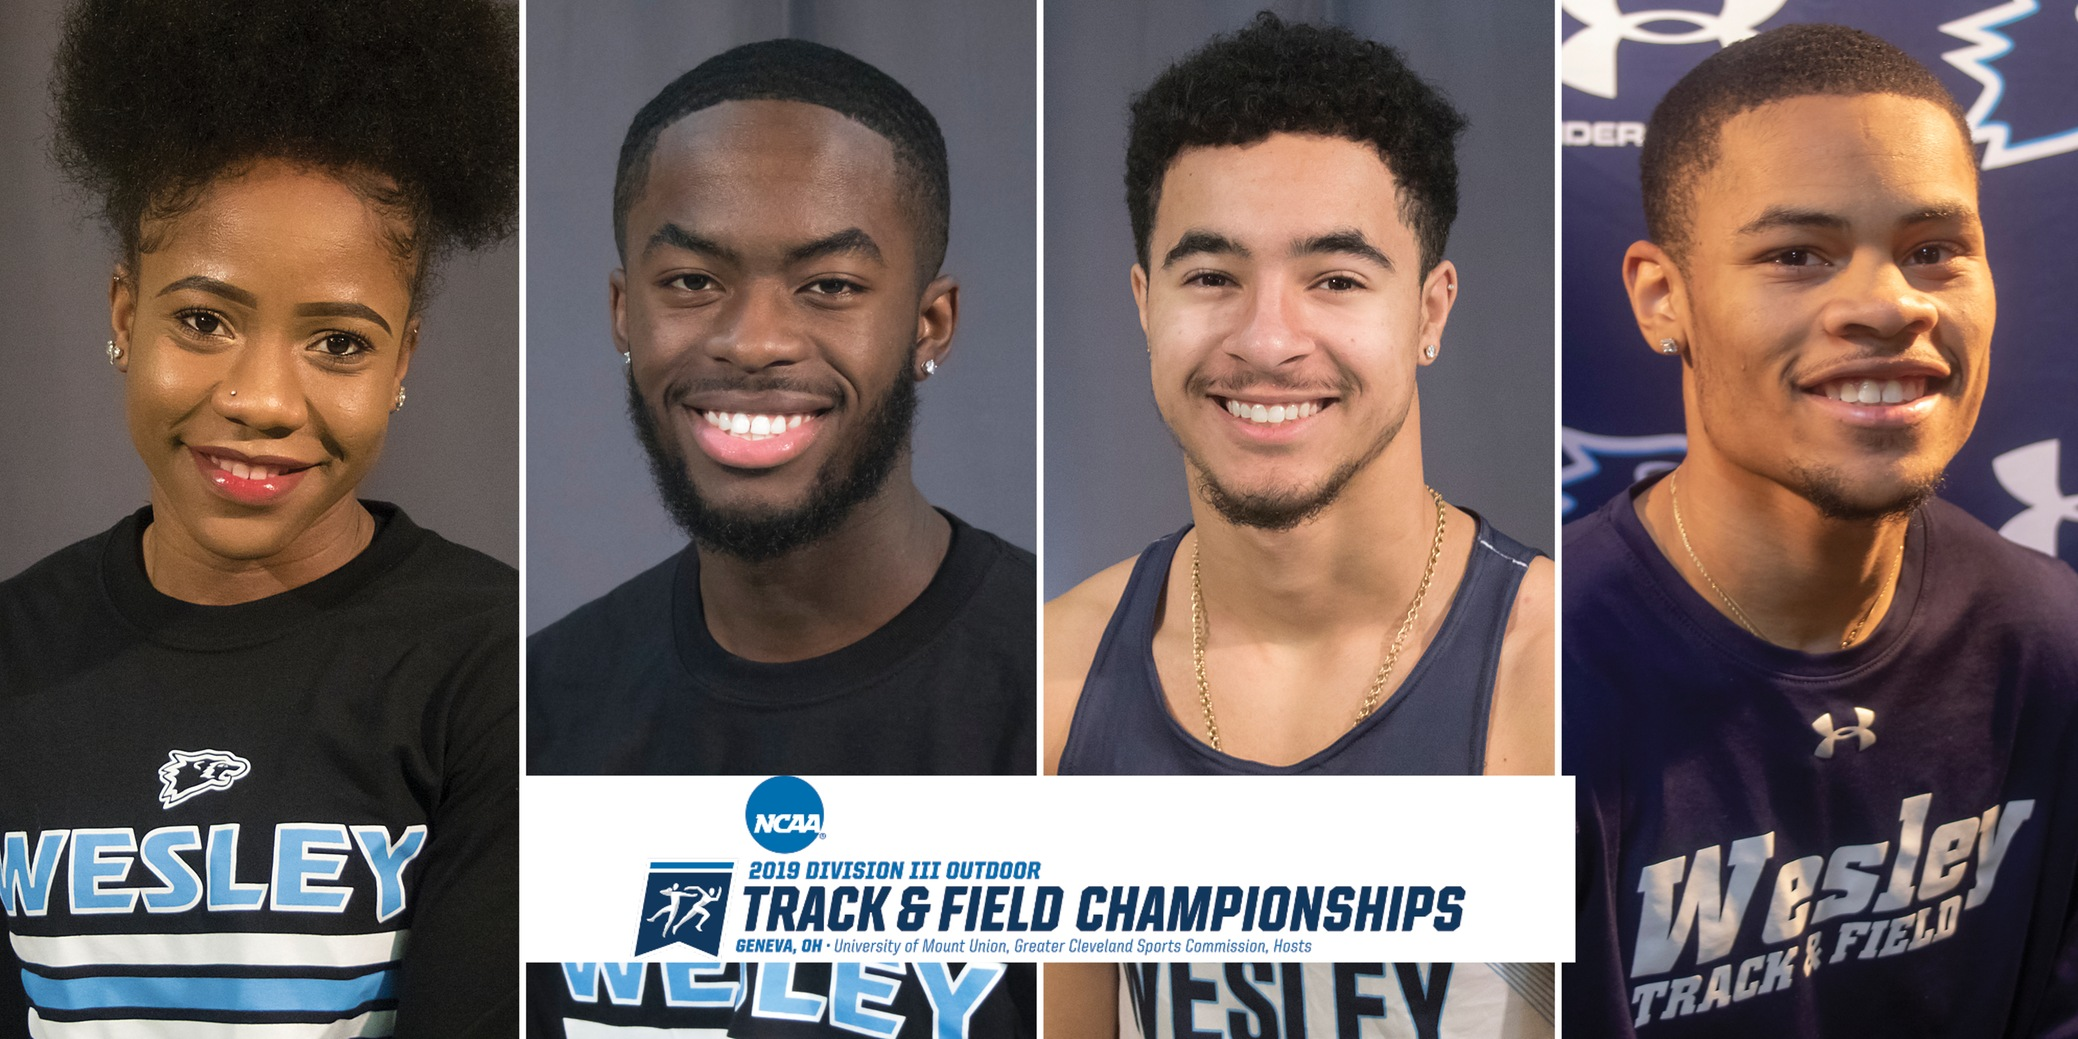 Four qualify for NCAA Outdoor Track & Field Championships